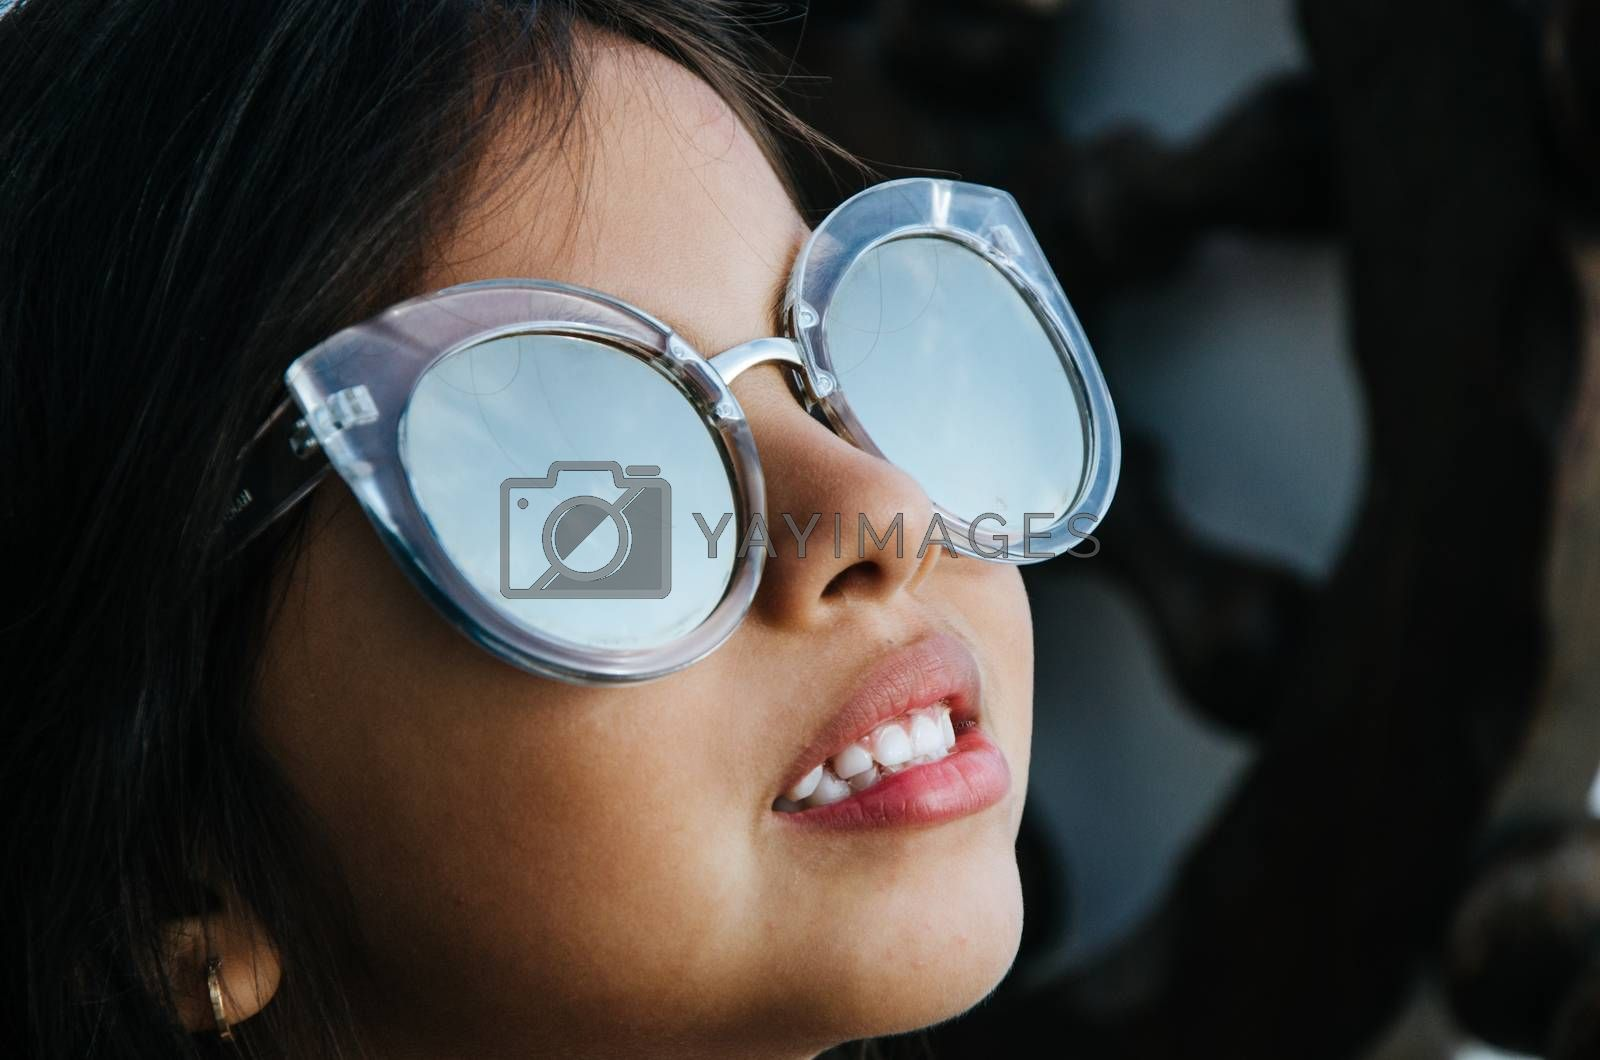 Cute little girl smiling with adult sun glasses